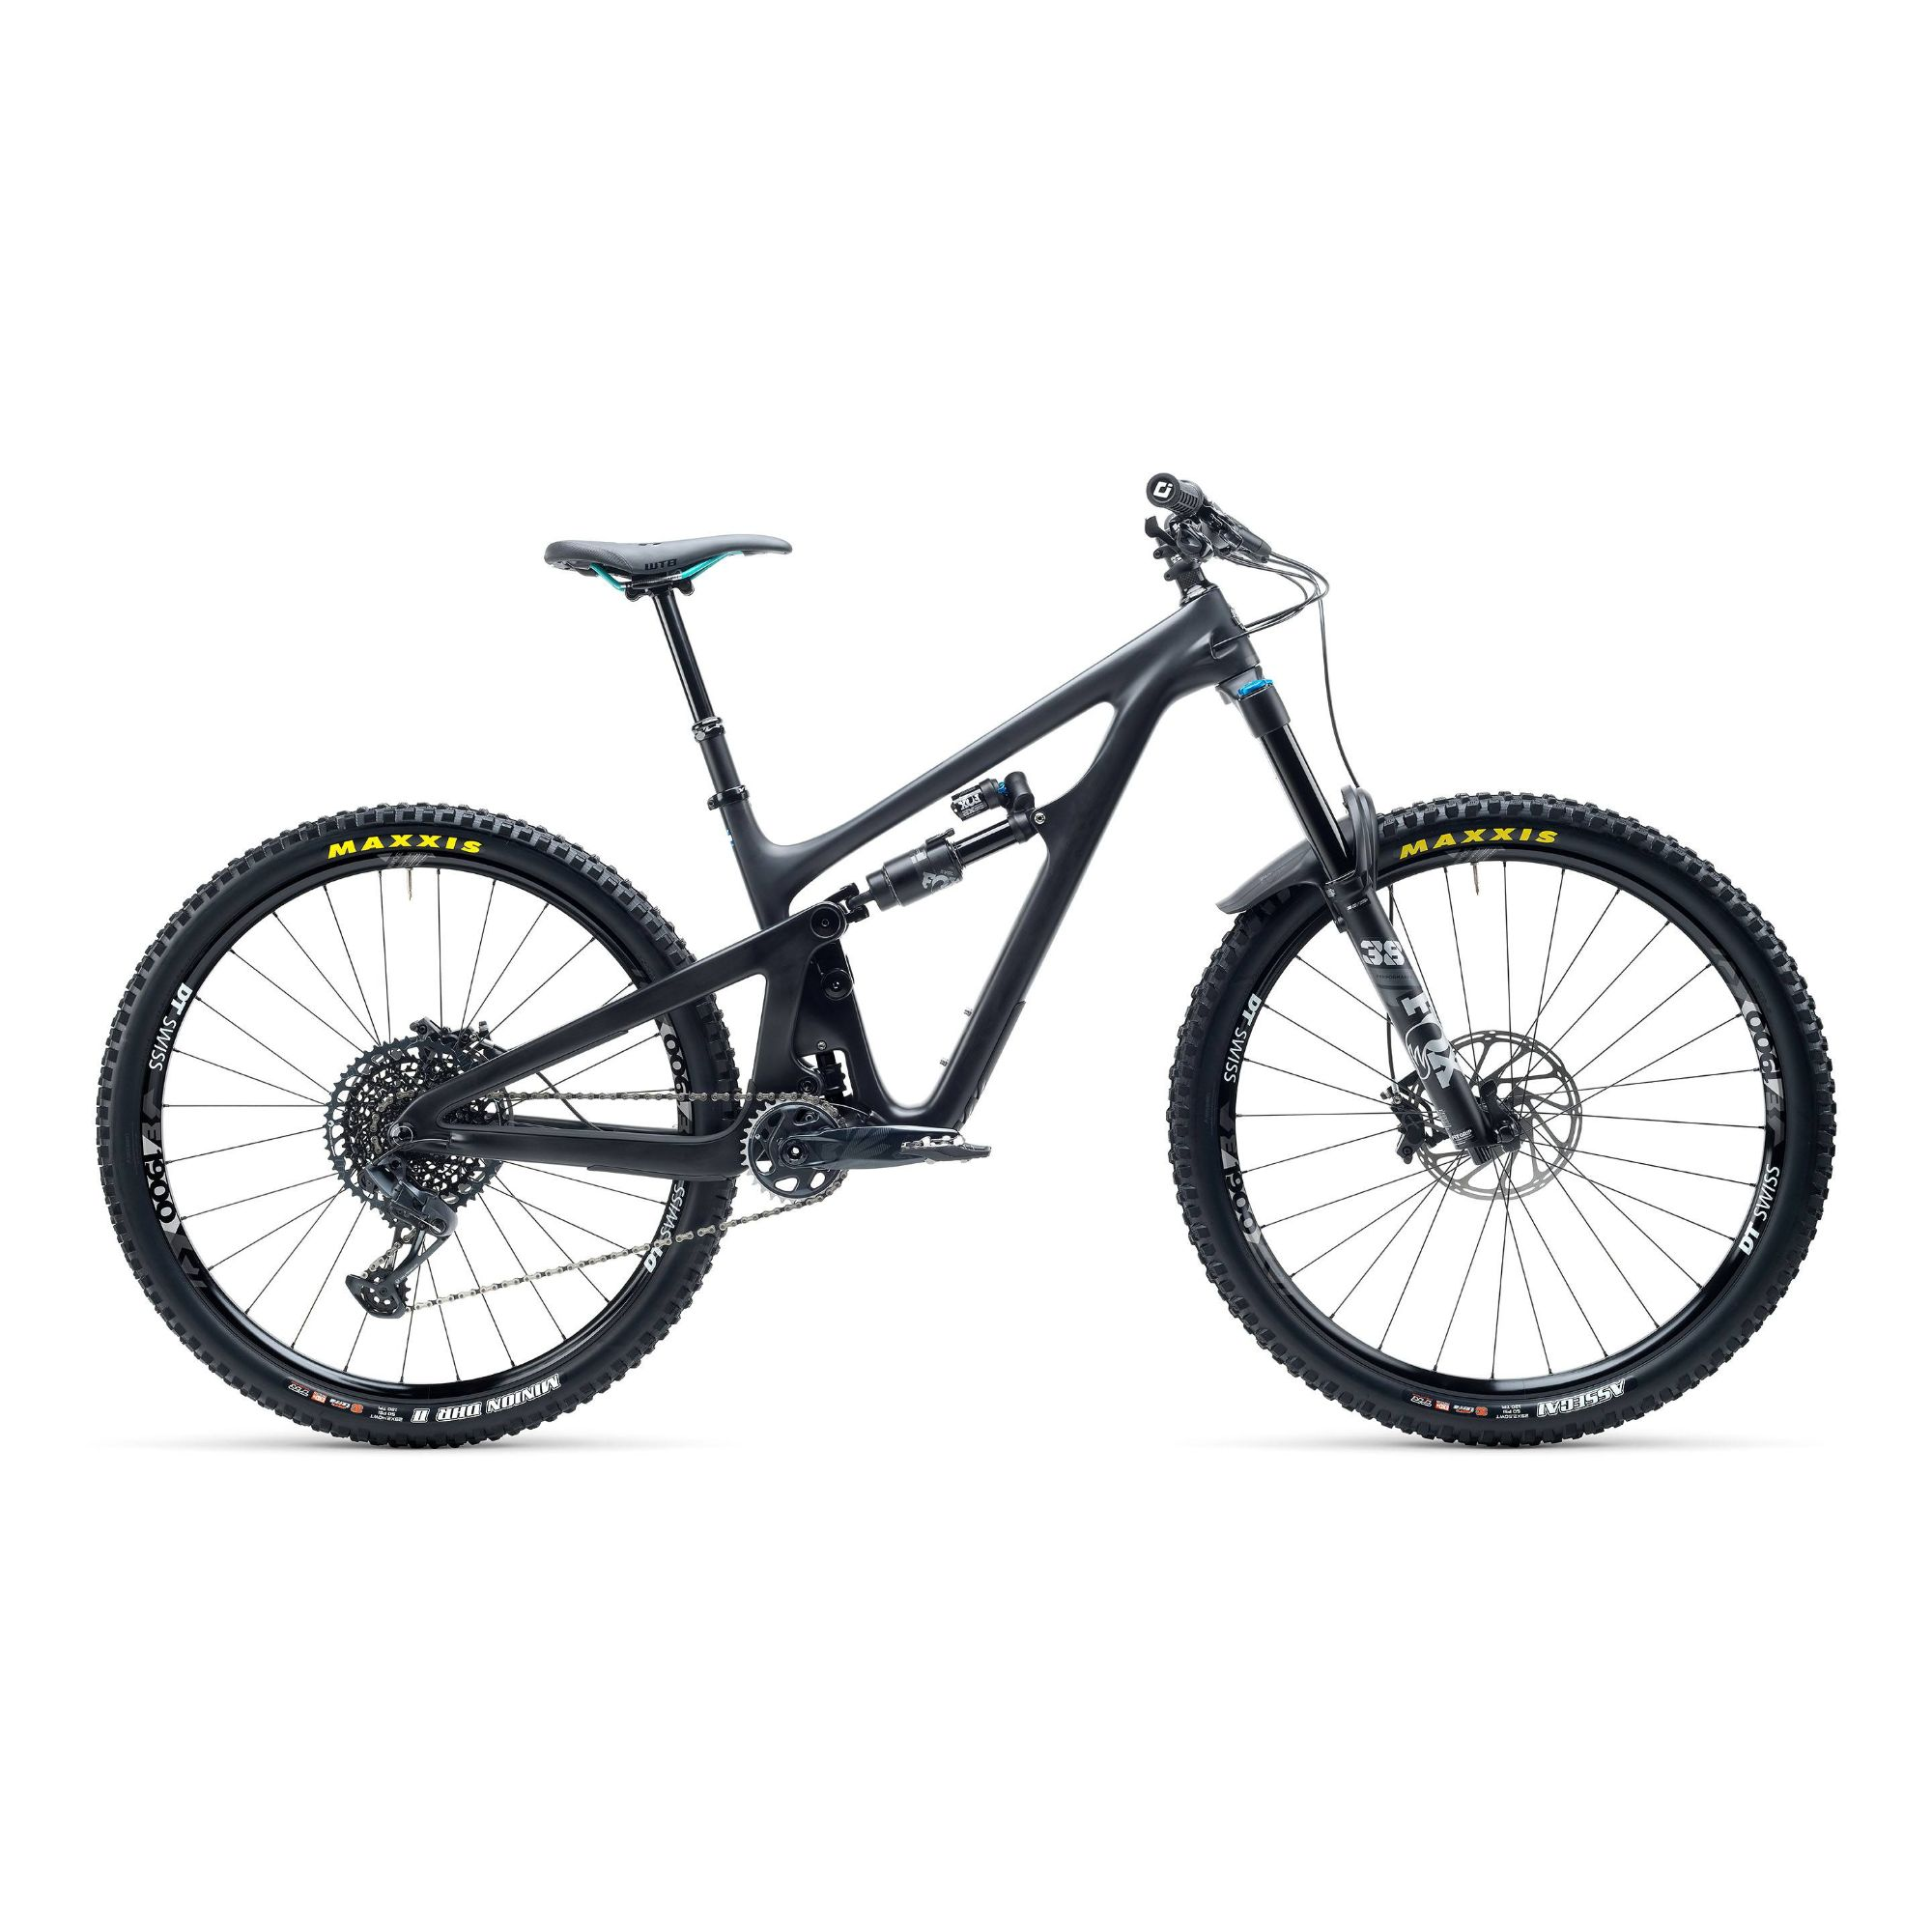 Yeti SB150 C Series C2 29ER GX Carbon Mountain Bike 2021 Raw/Grey